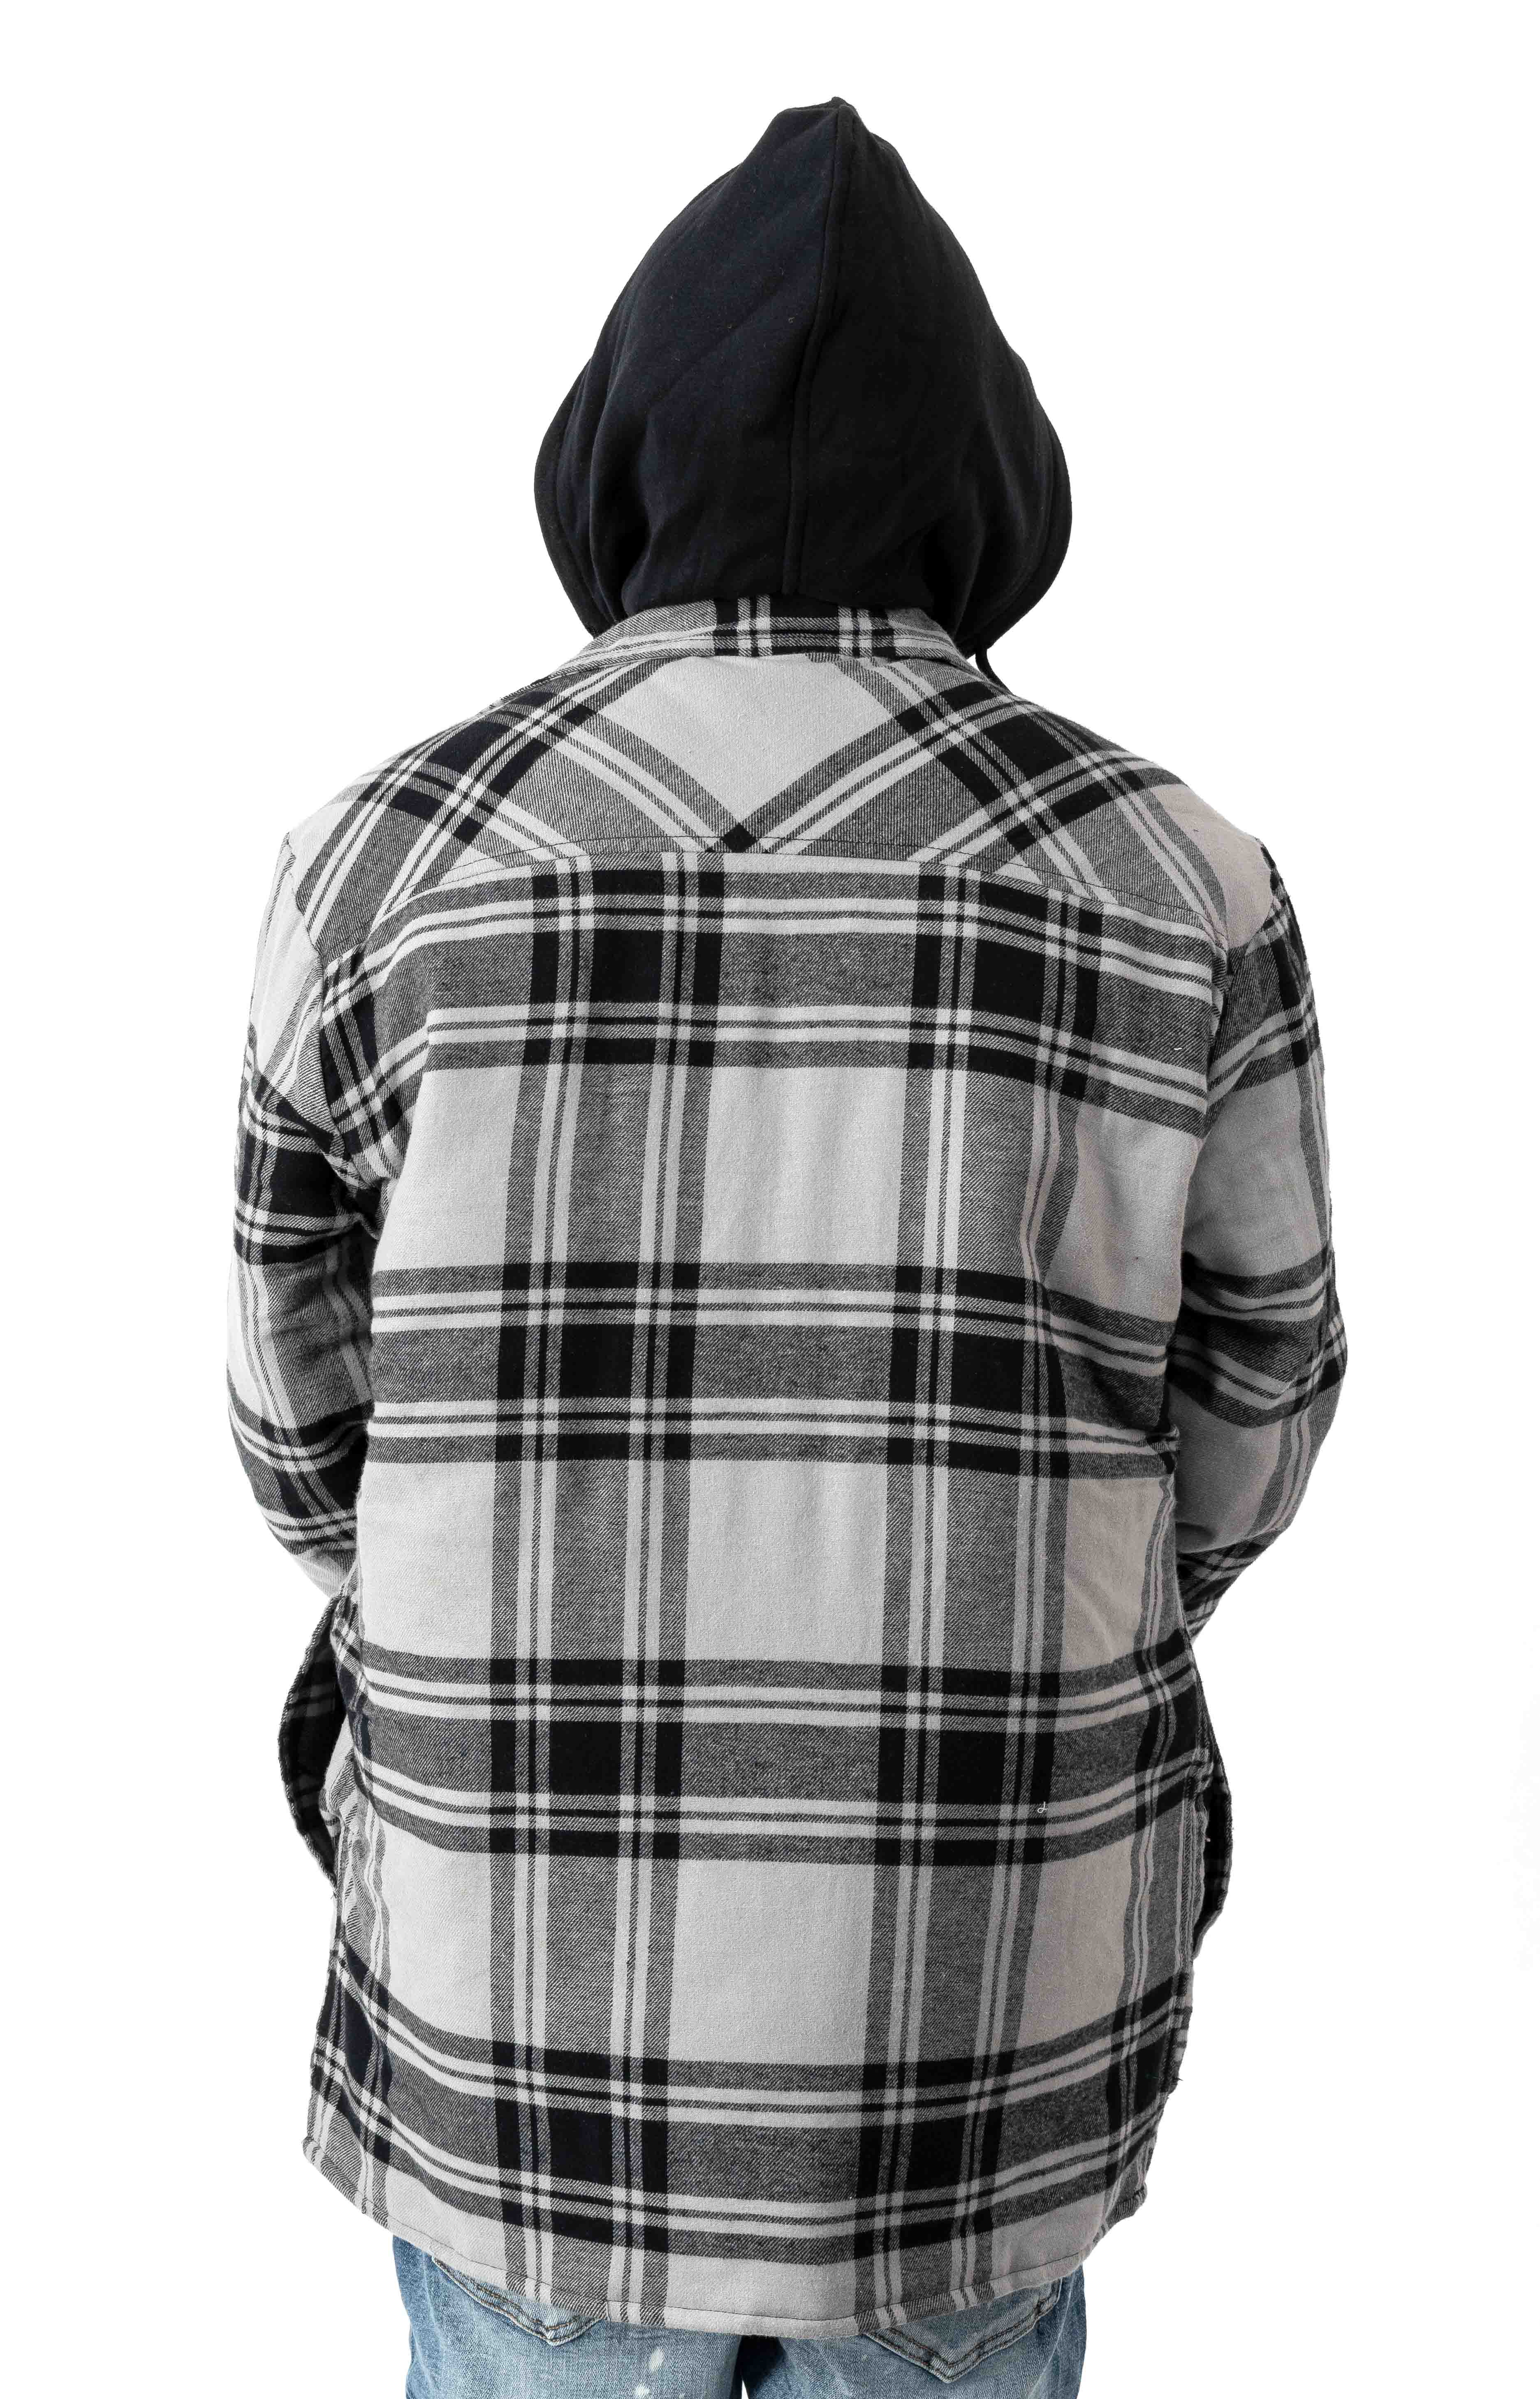 (TJ201POK) Relaxed Fit Icon Hooded Quilted Shirt Jacket - Gray/Black Plaid 3